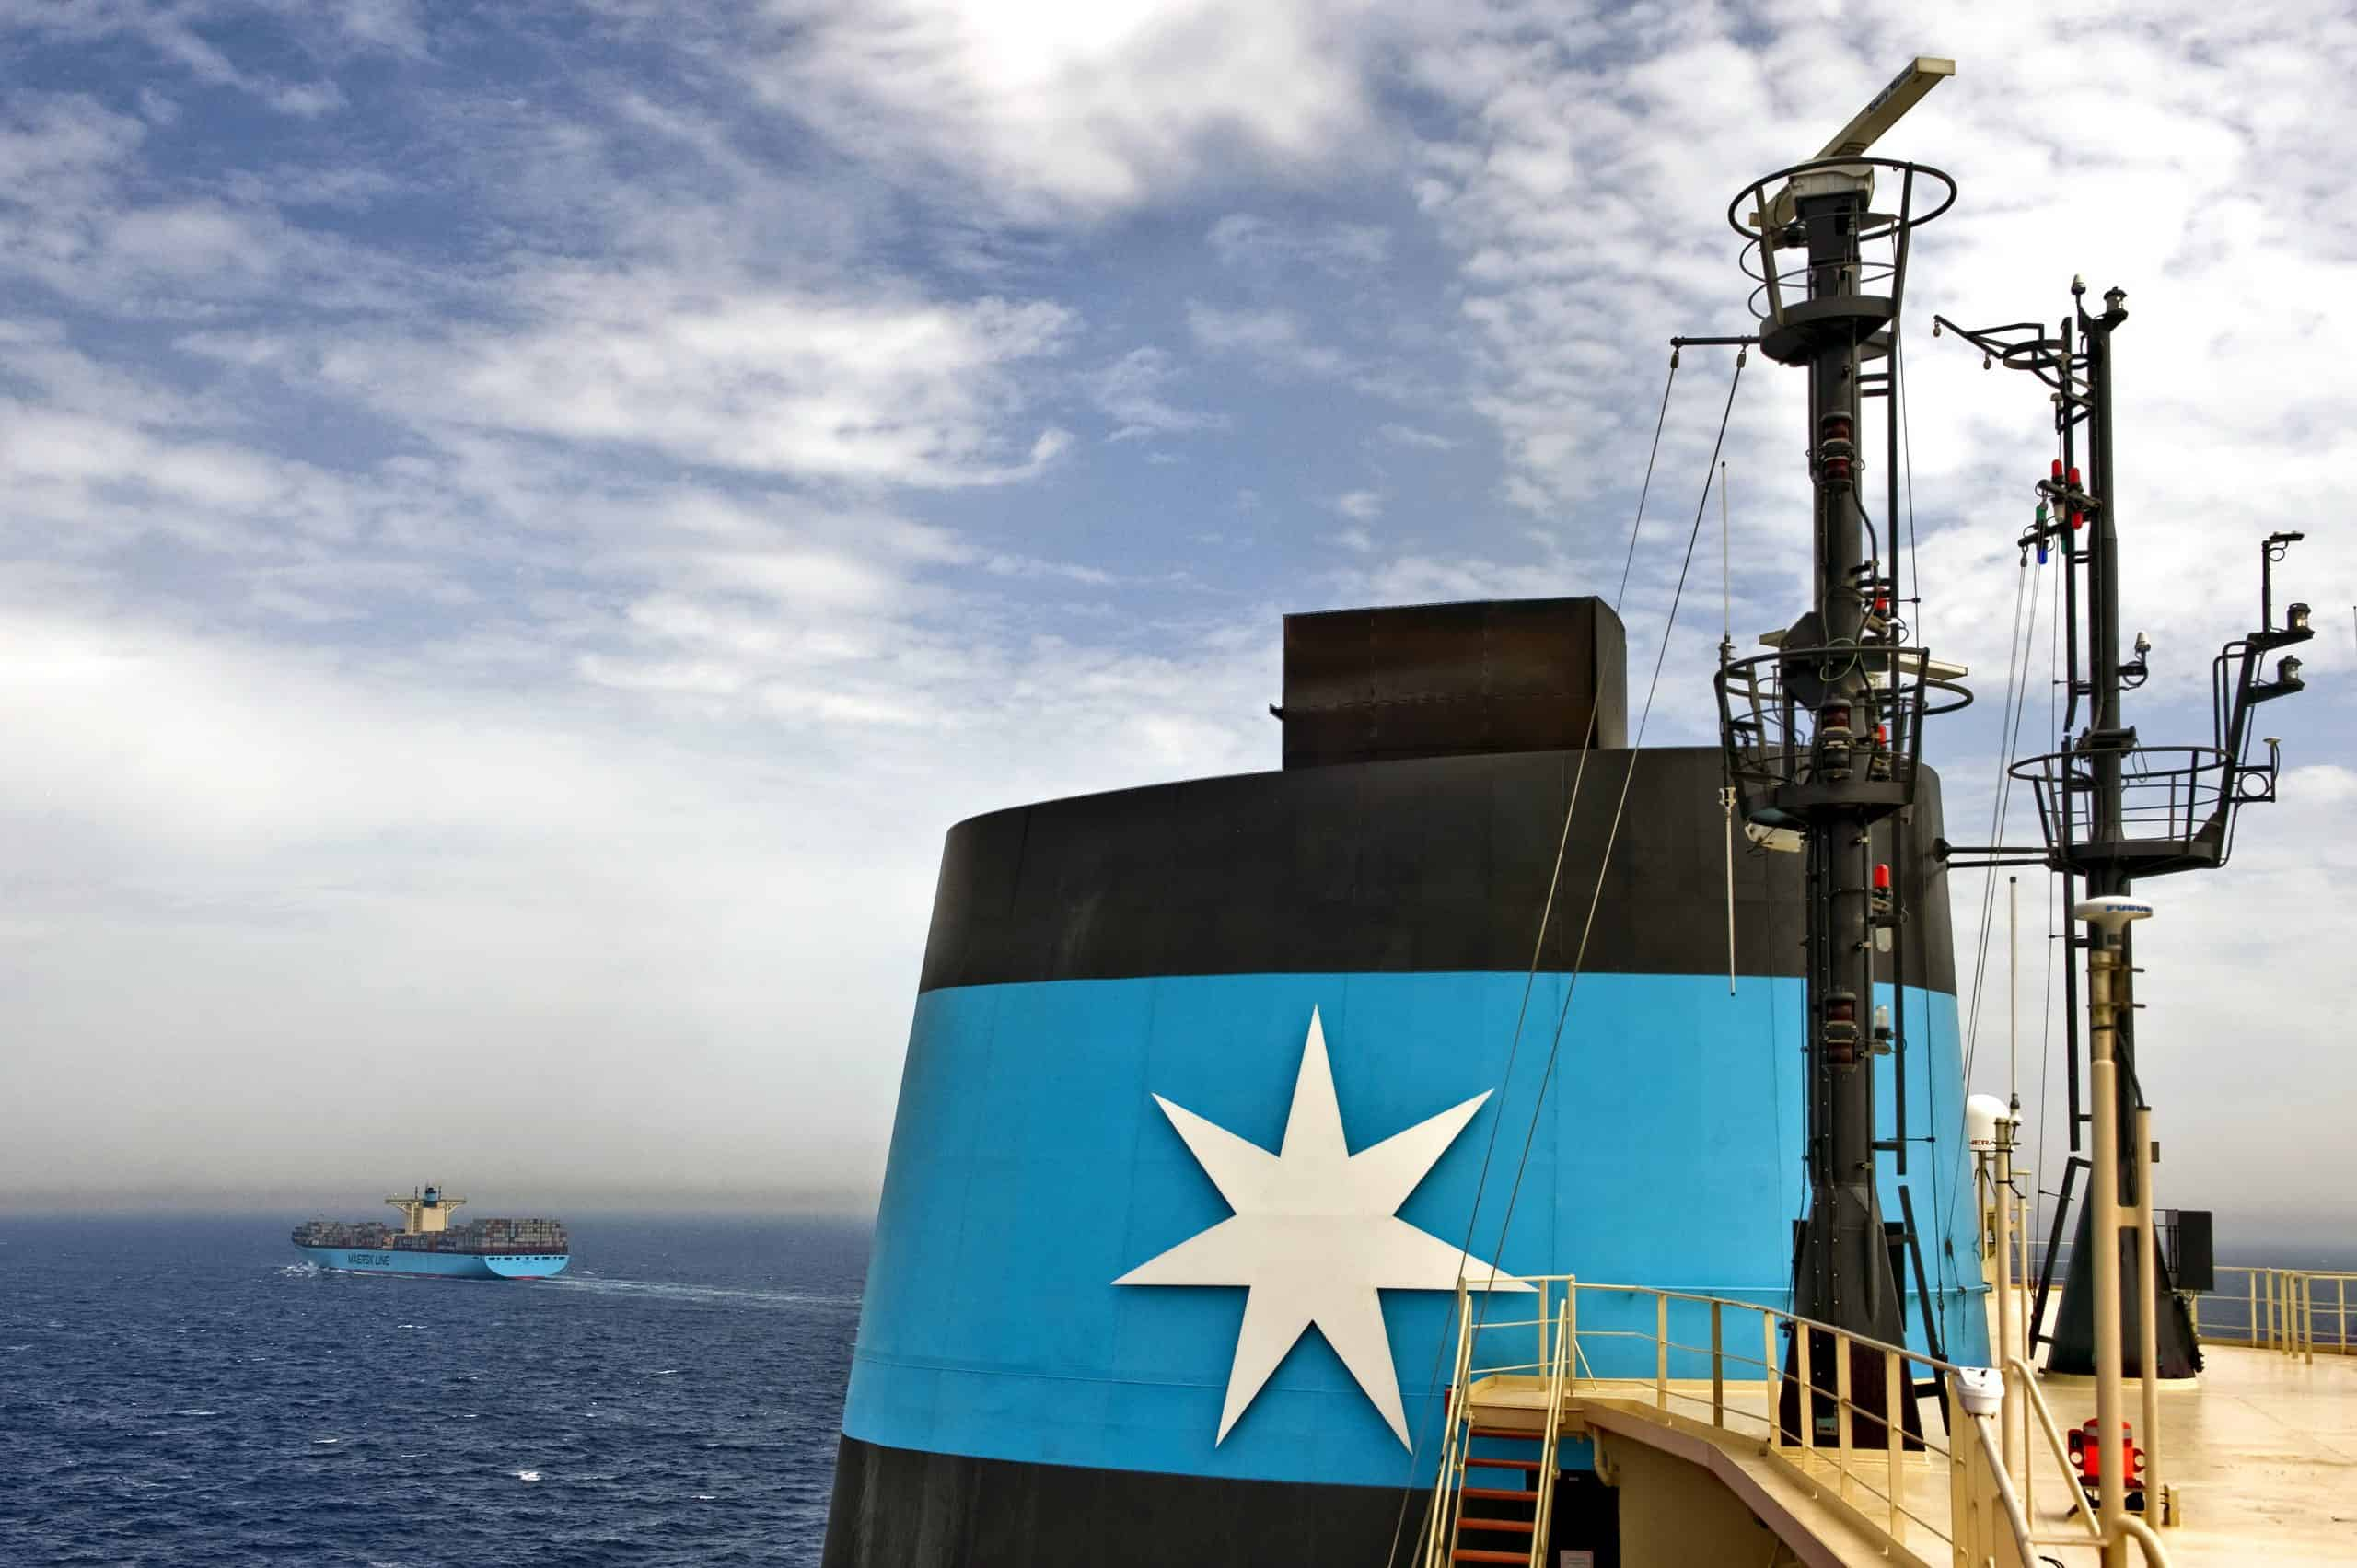 EXCLUSIVE: After Triple Es – no more new ships for Maersk